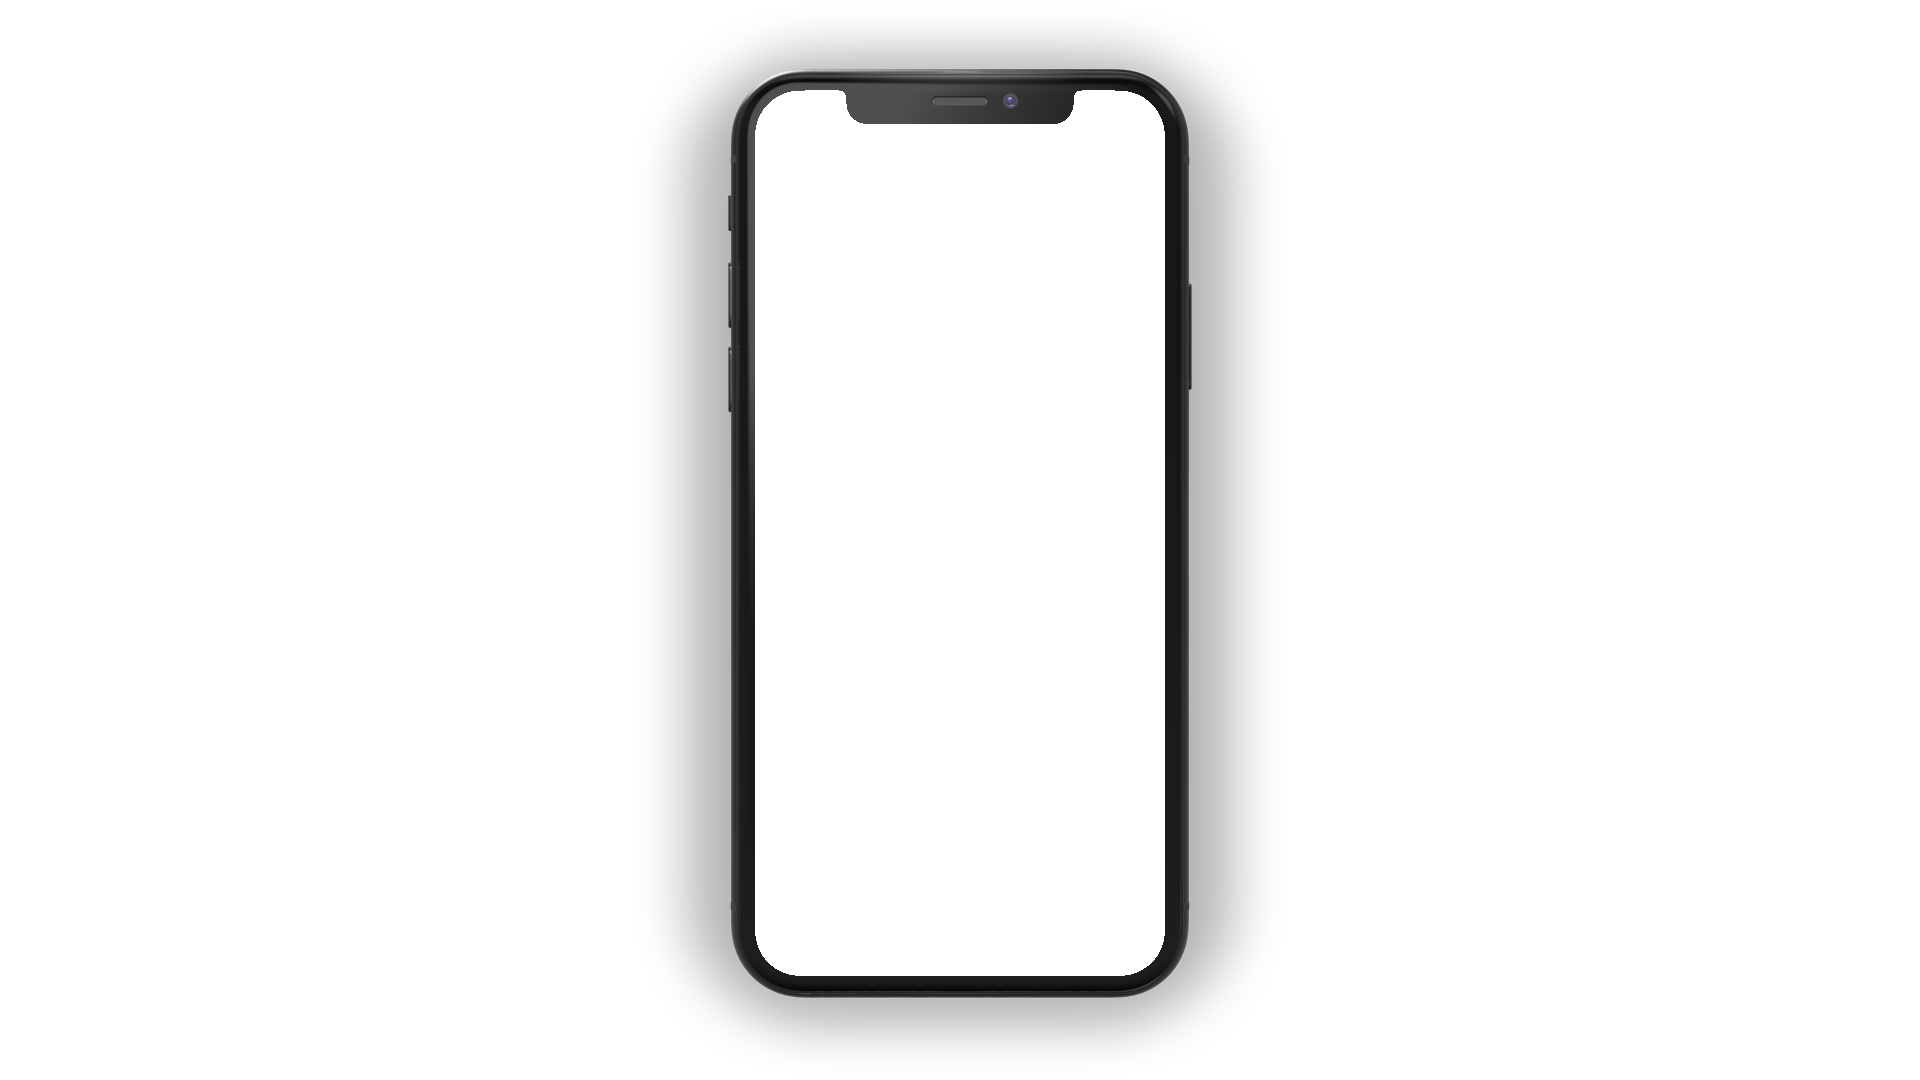 iPhone X PNG top view